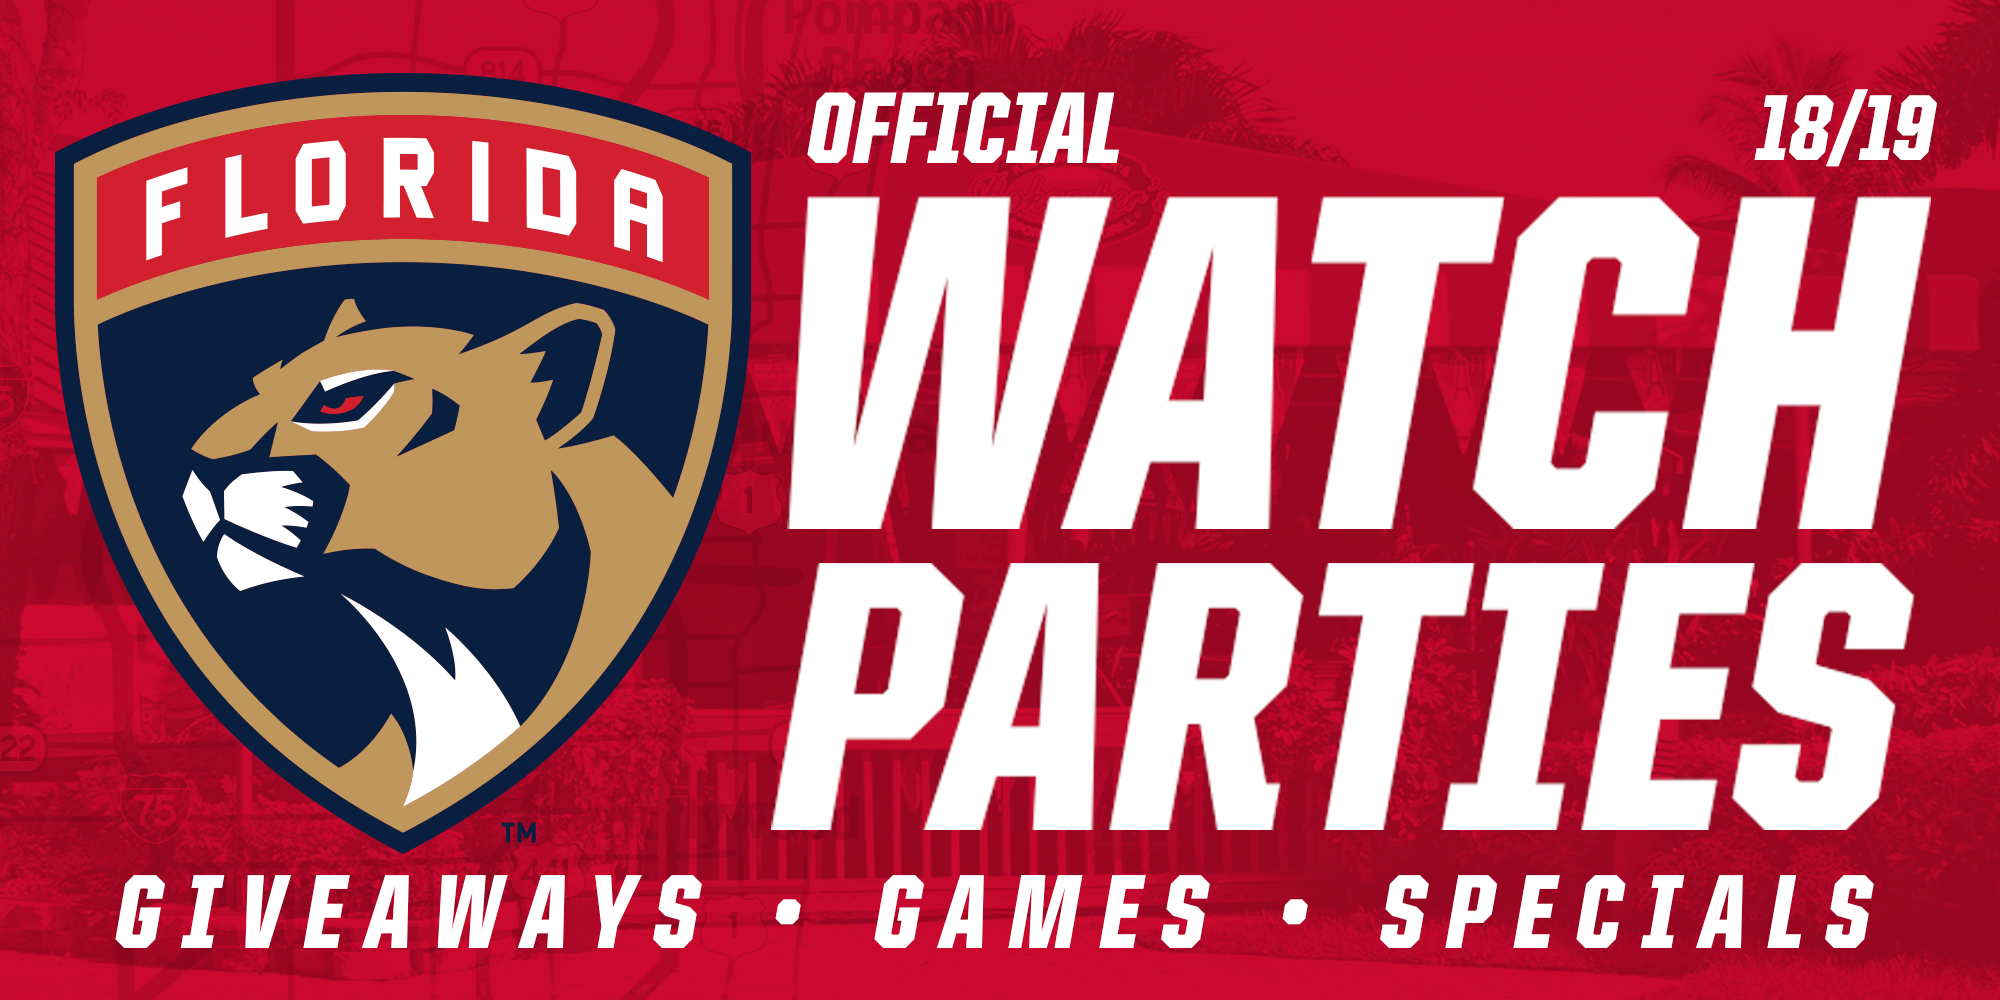 Florida Panthers Official Watch Parties logo